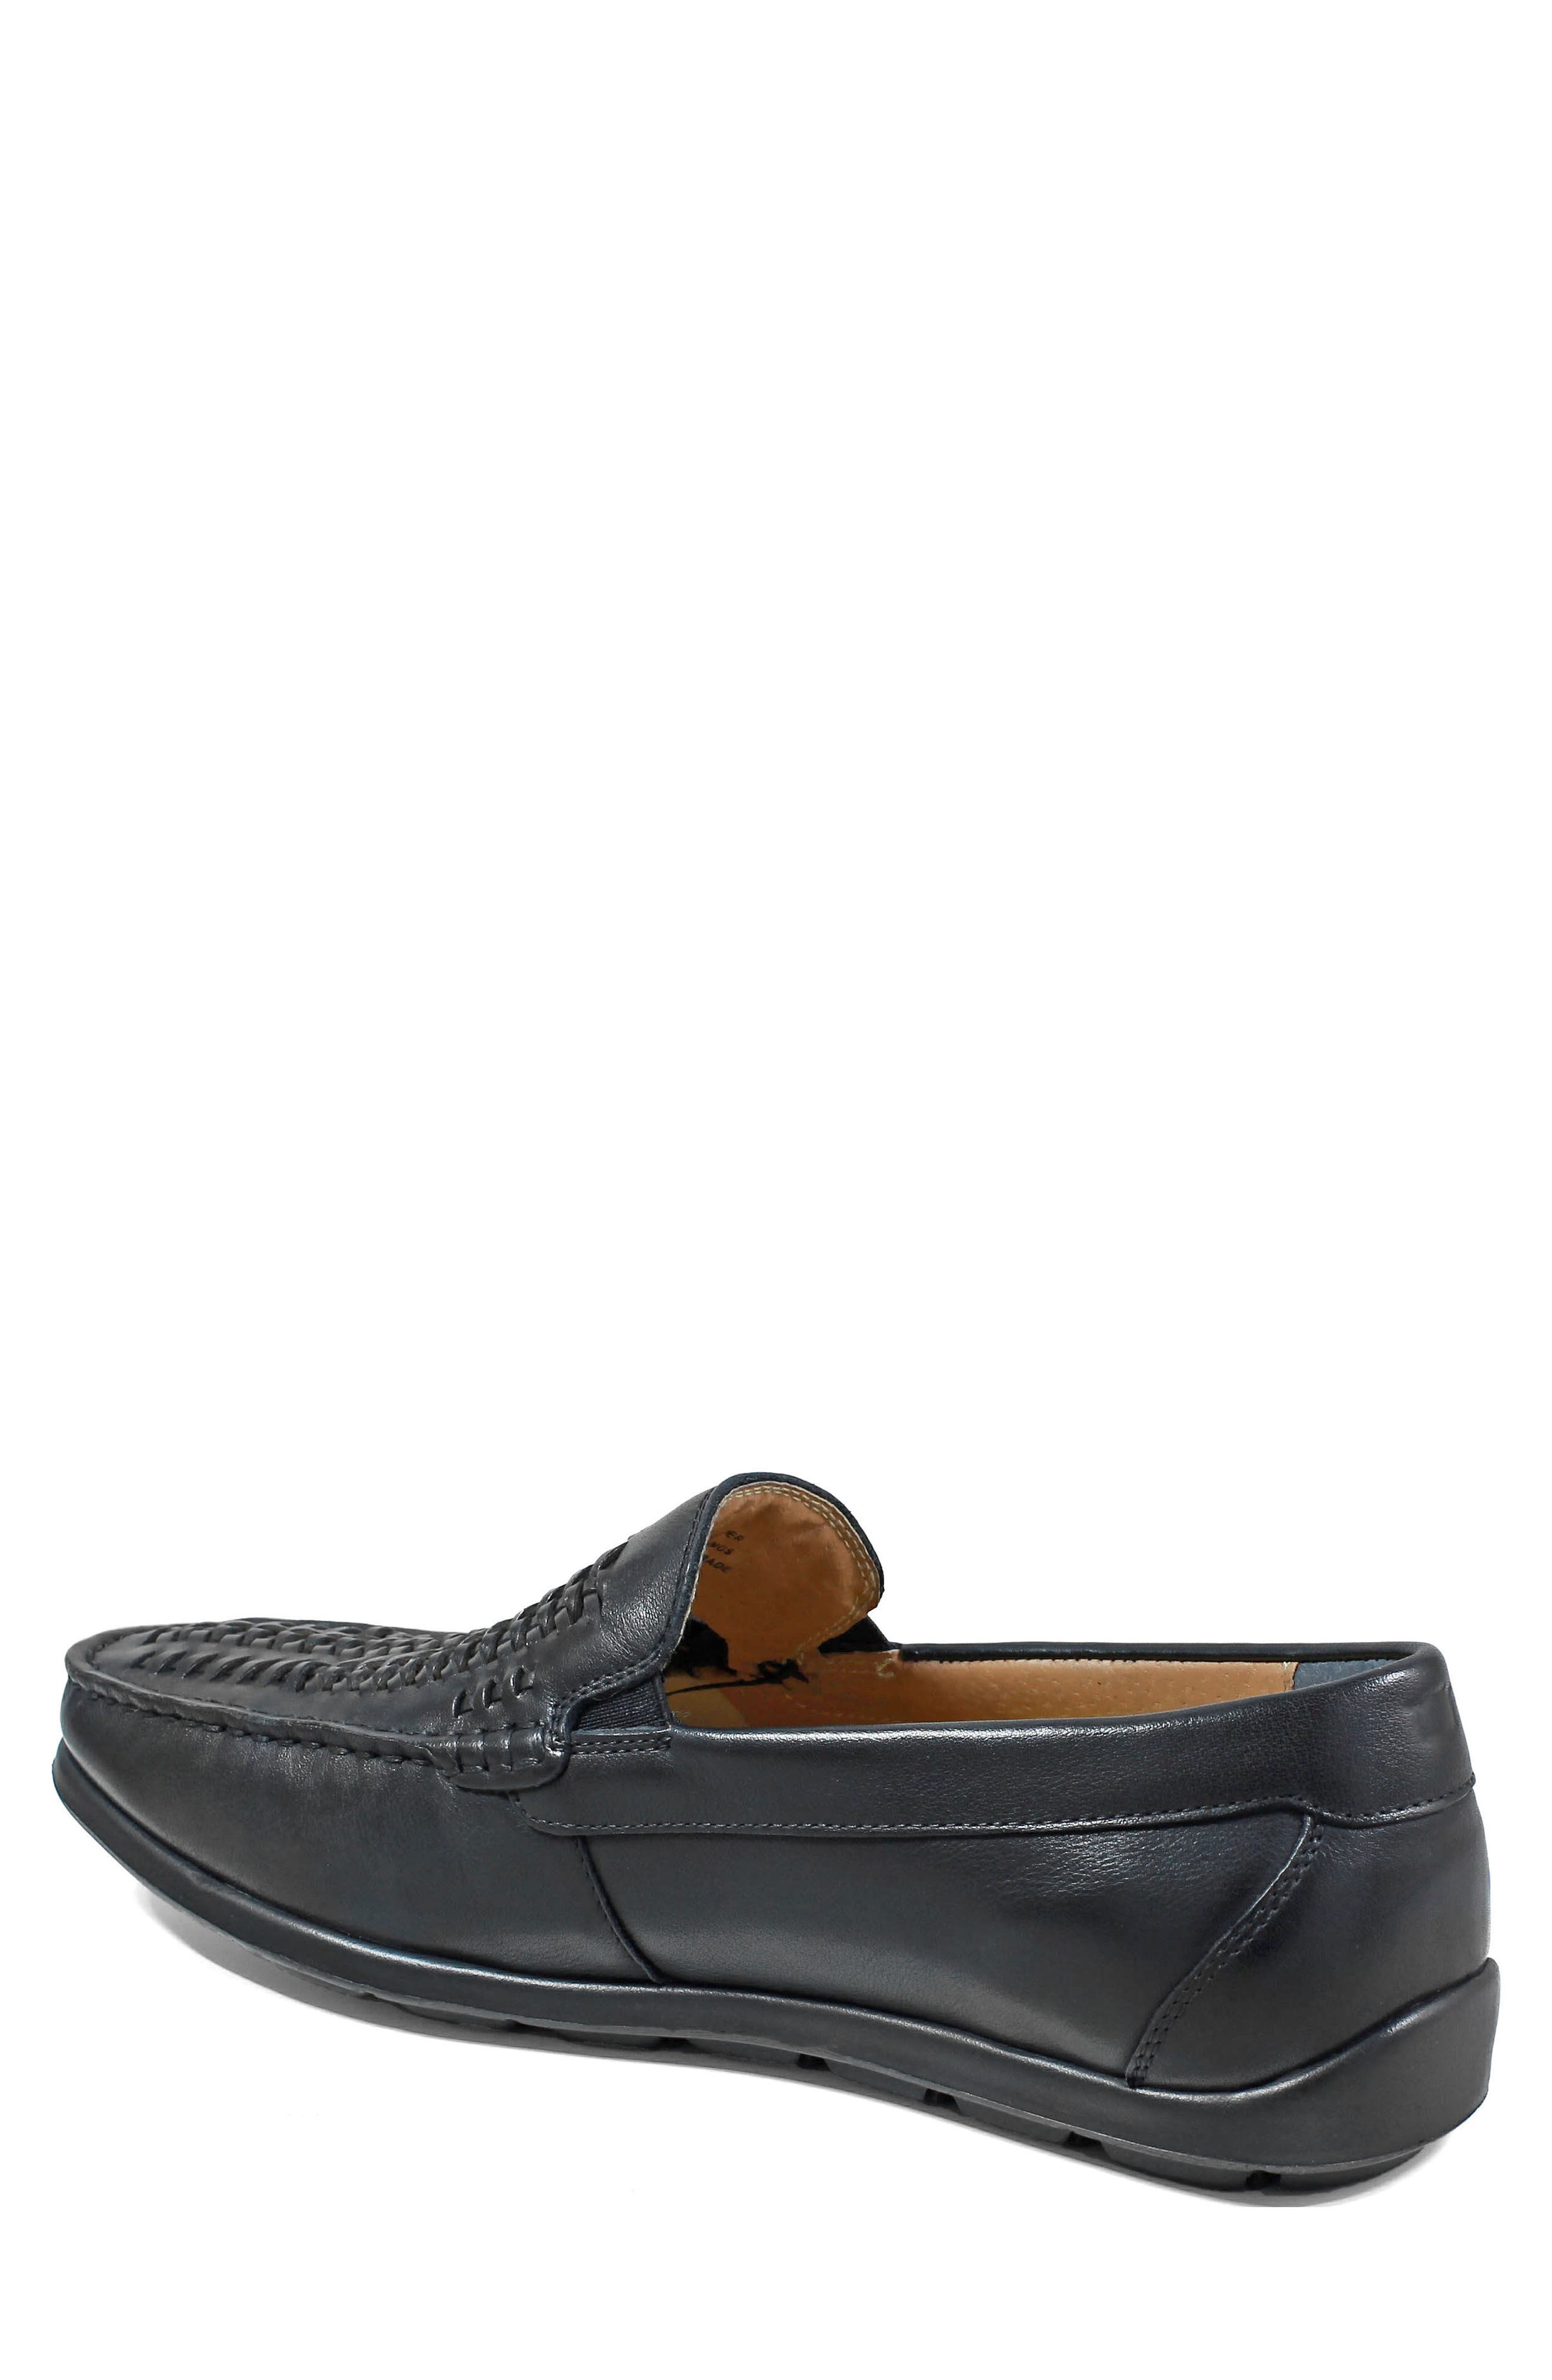 Comfortech Draft Loafer,                             Alternate thumbnail 2, color,                             001